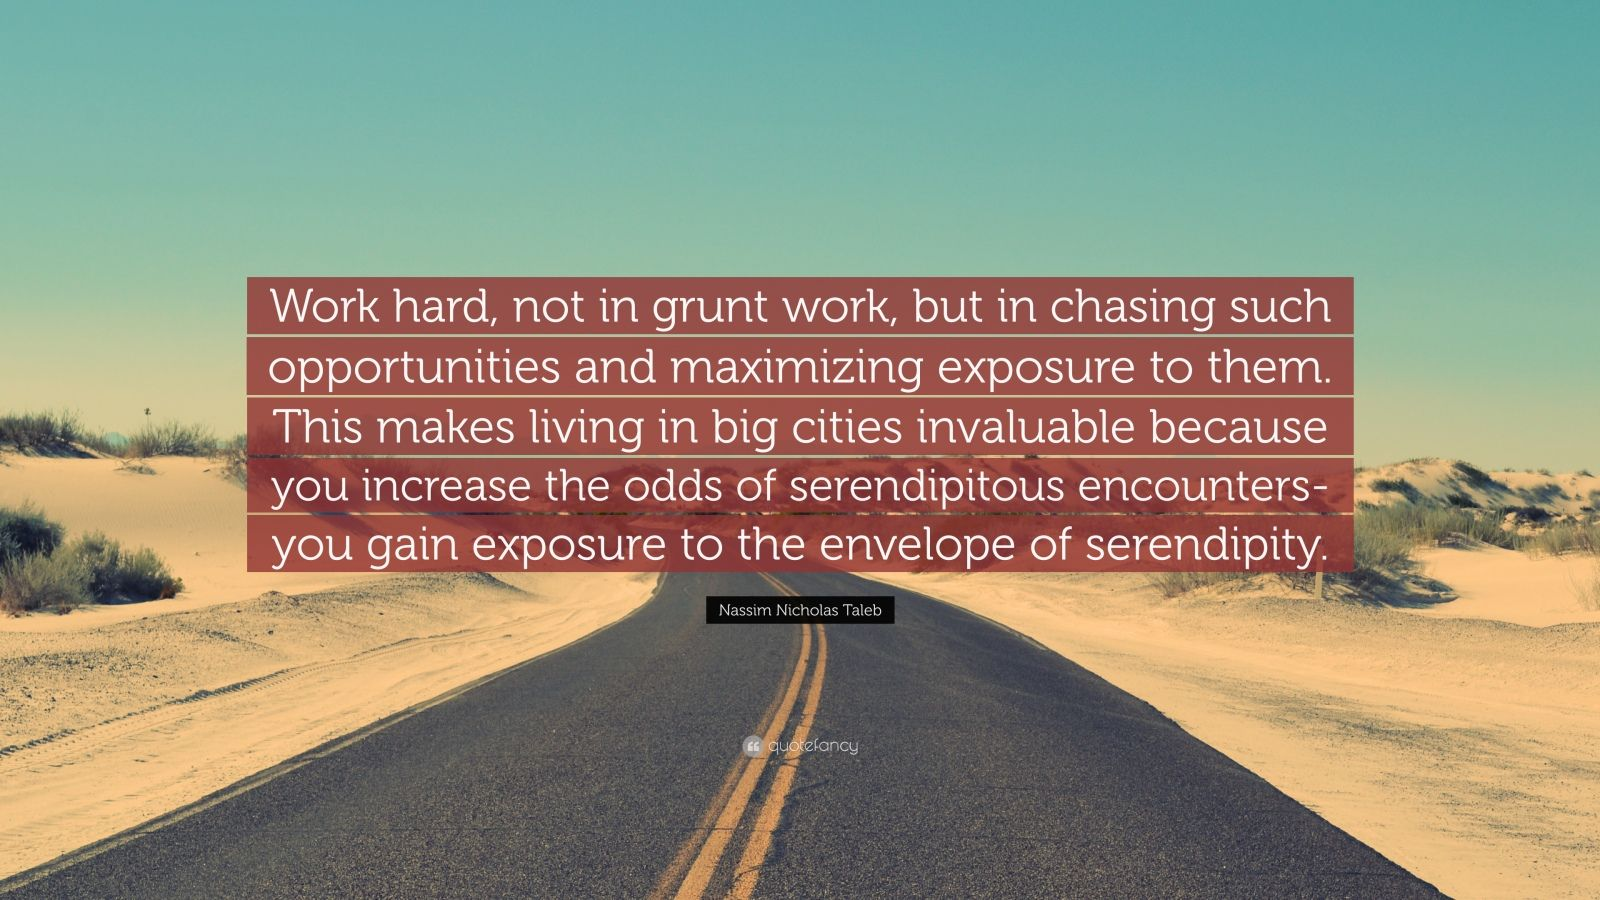 "Nassim Nicholas Taleb Quote: ""Work hard, not in grunt work, but in chasing such opportunities and maximizing exposure to them. This makes living in big cities invaluable because you increase the odds of serendipitous encounters-you gain exposure to the envelope of serendipity."""